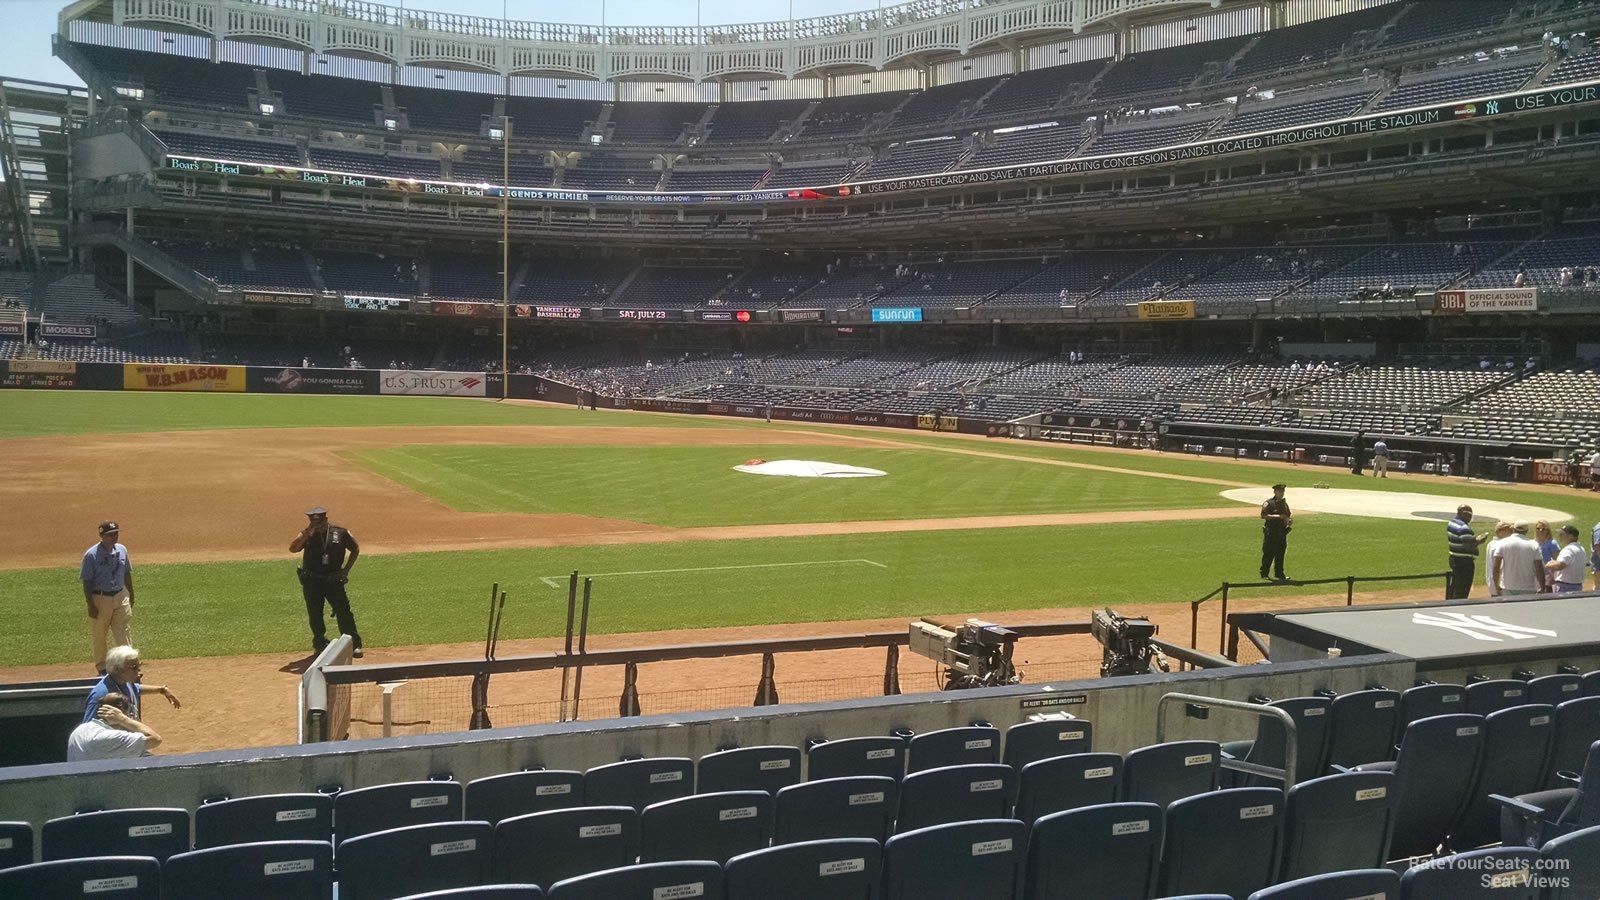 New York Yankees Seat View for Yankee Stadium Section 25, Row 5